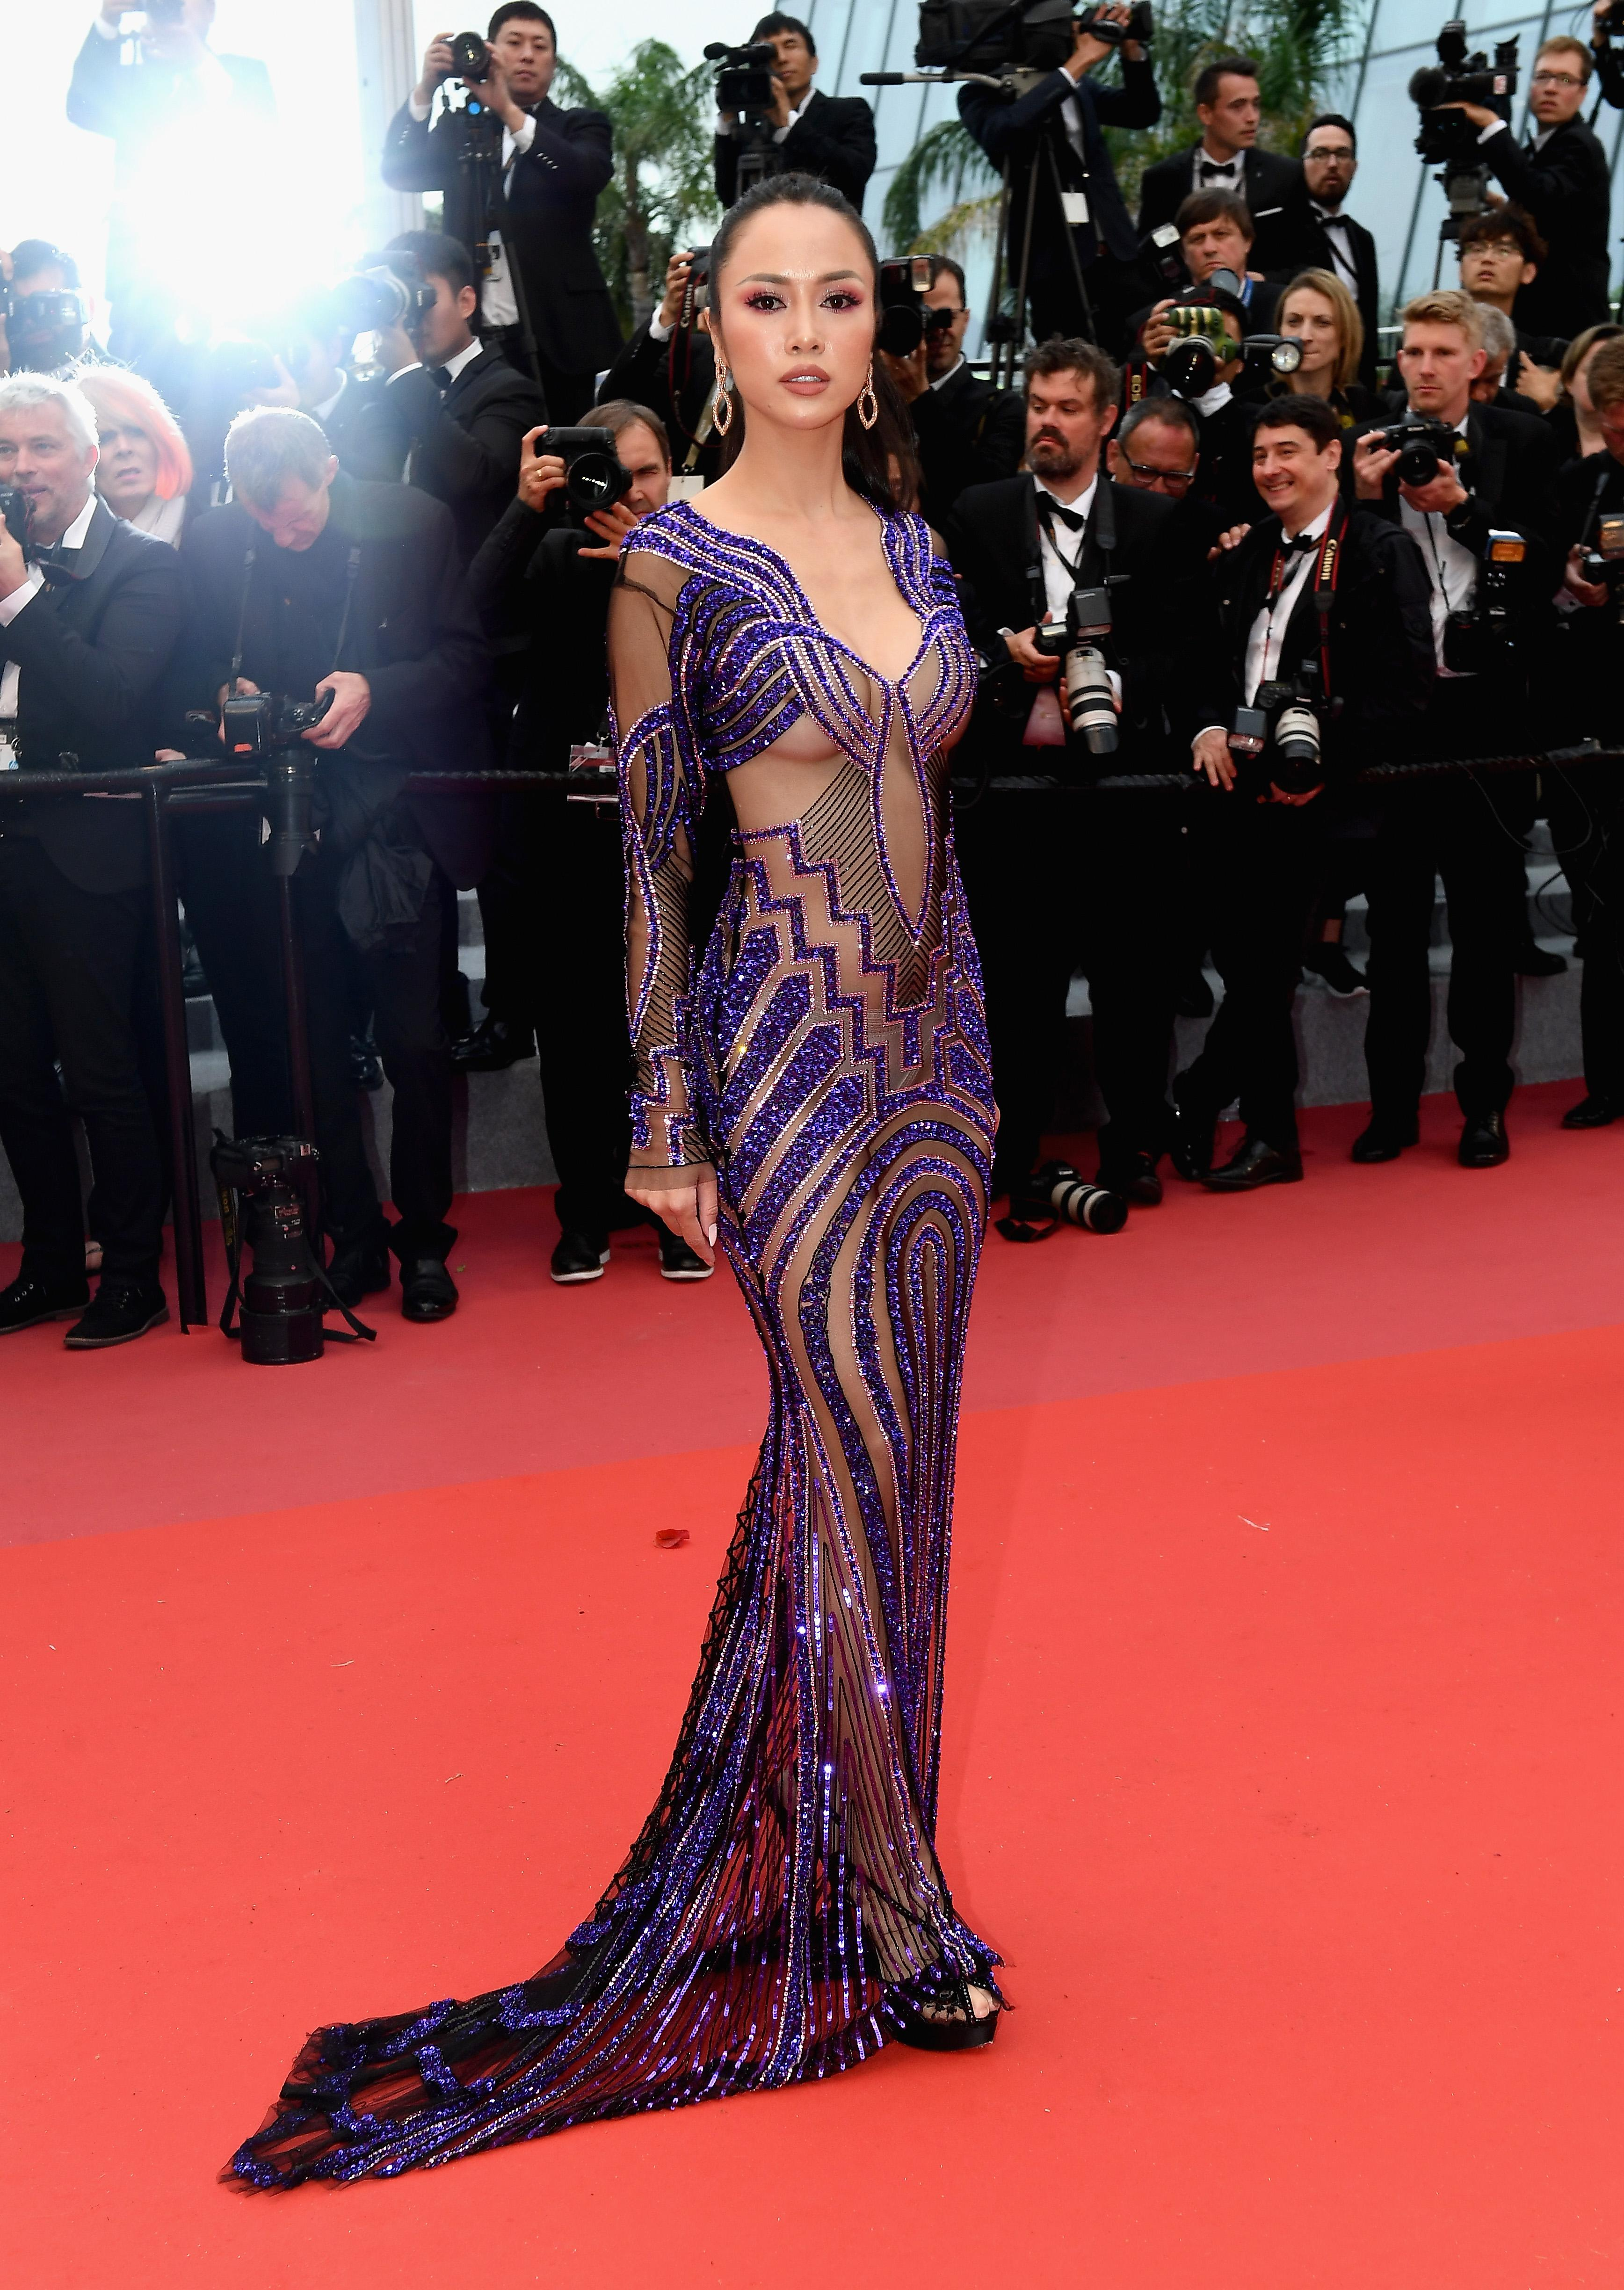 Reality Star Goes Commando And Has Wardrobe Malfunction At The Cannes Film Festival 2018